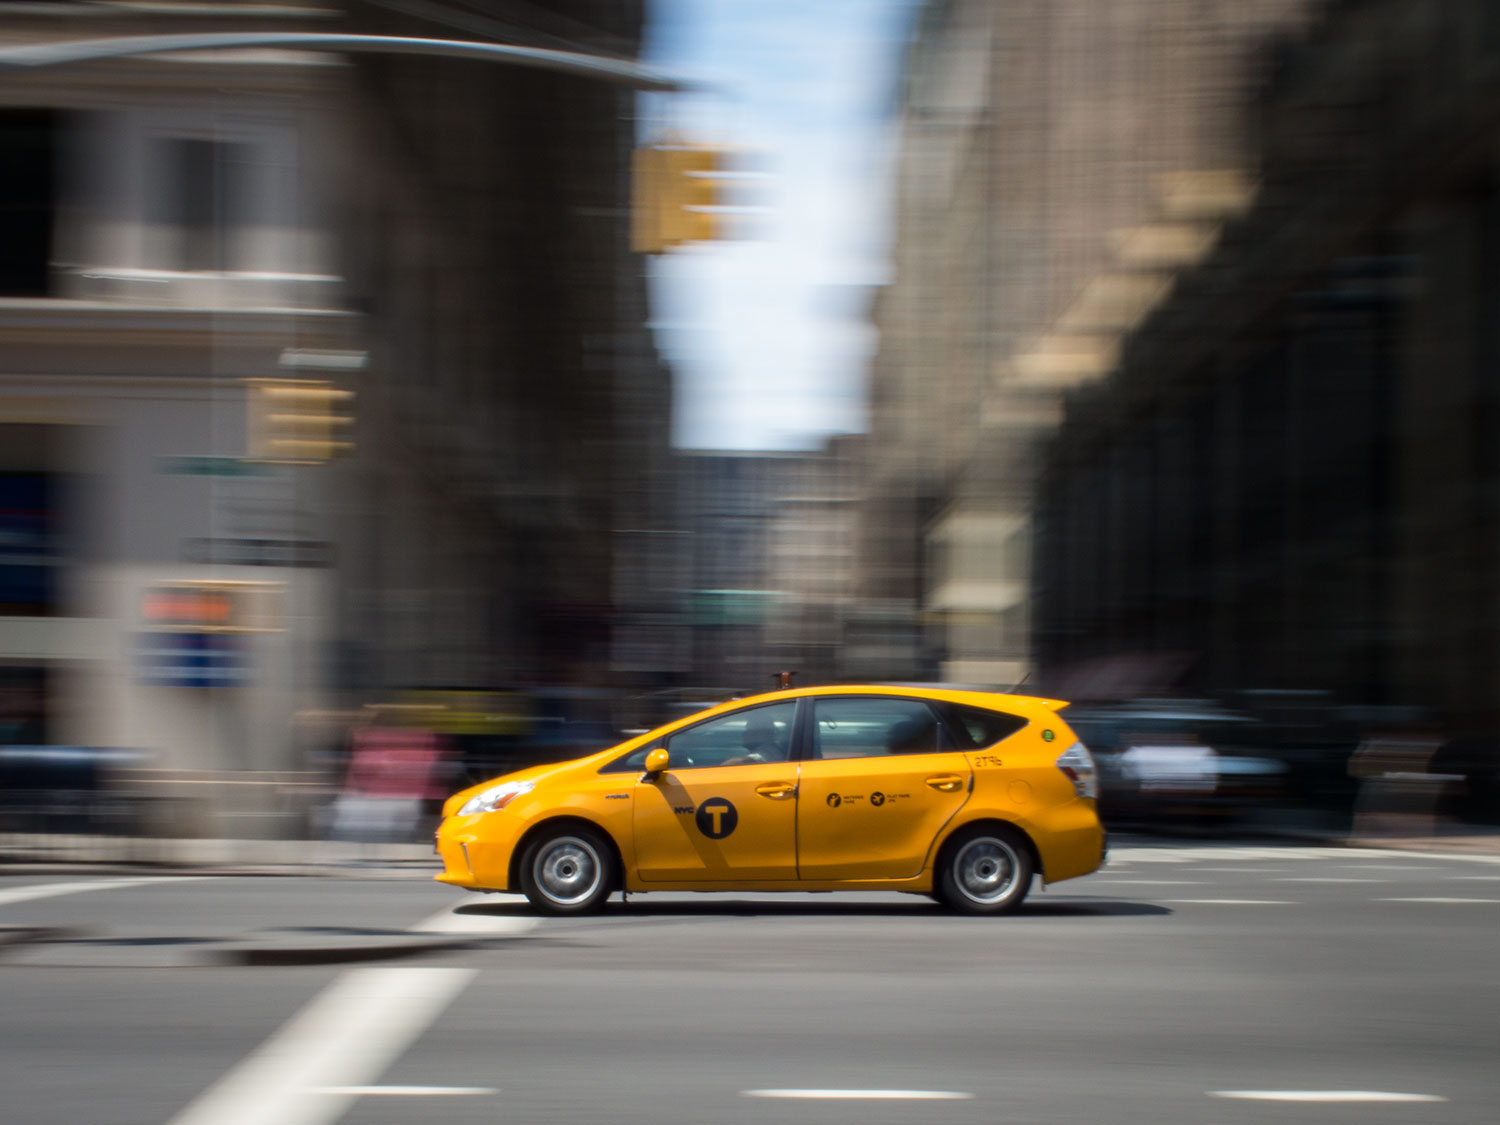 Panning at 1/25th. Unlike a DSLR, you actually see your captured image in the viewfinder for a split second.